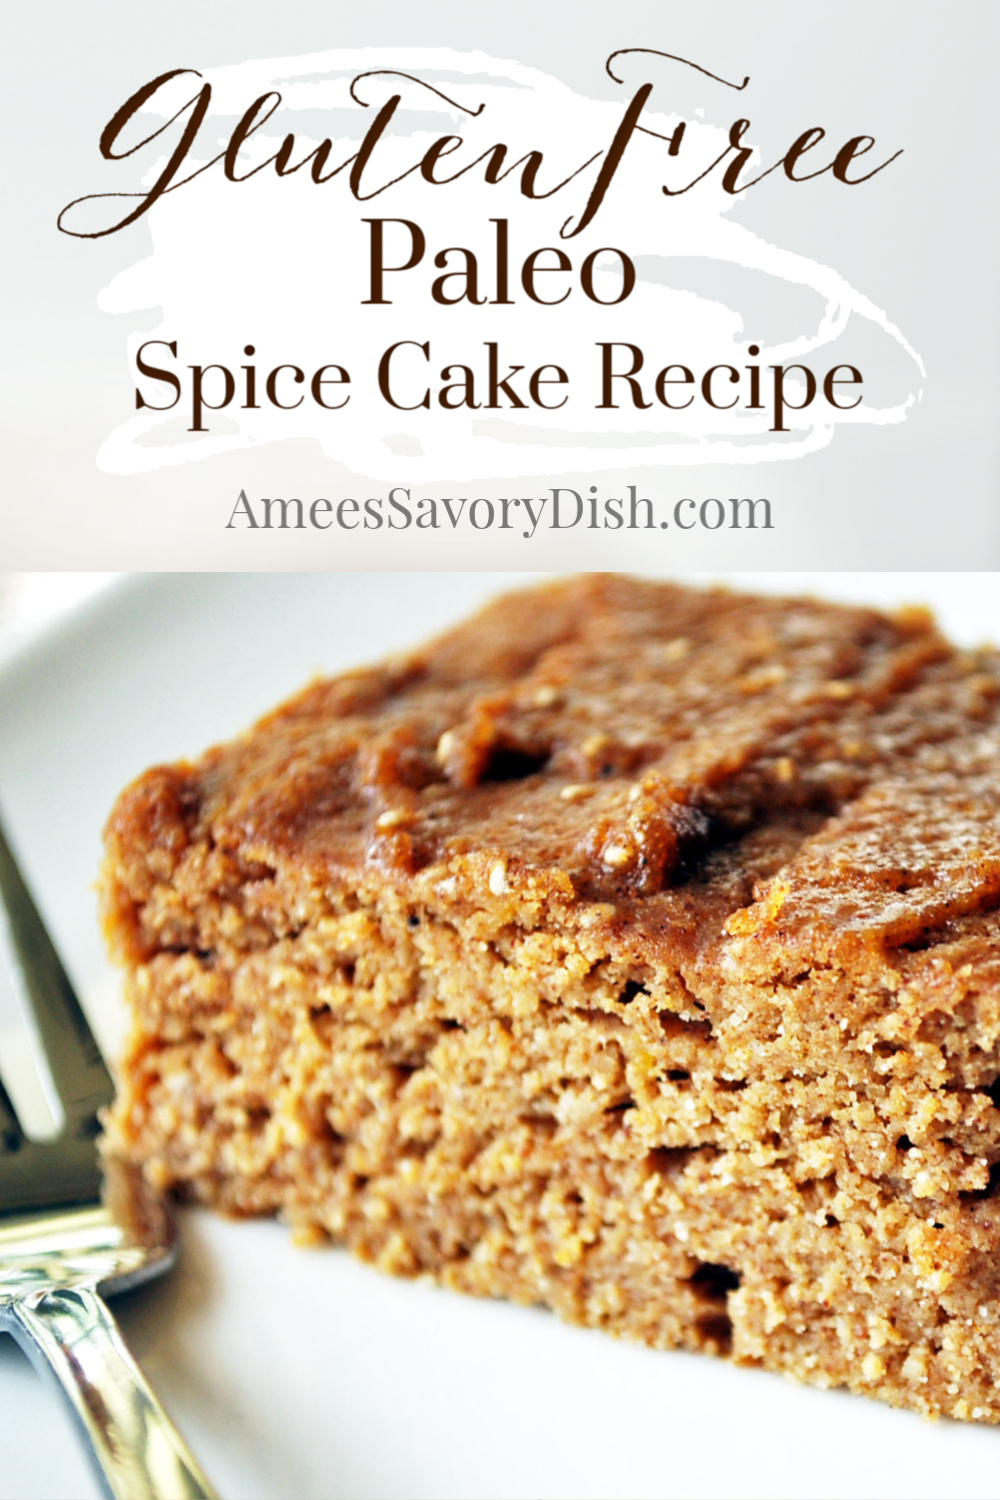 A Paleo-inspired recipe for gluten-free spice cake made with a Paleo blend flour, pumpkin, maple syrup, and eggs for a delicious fall dessert. via @Ameecooks